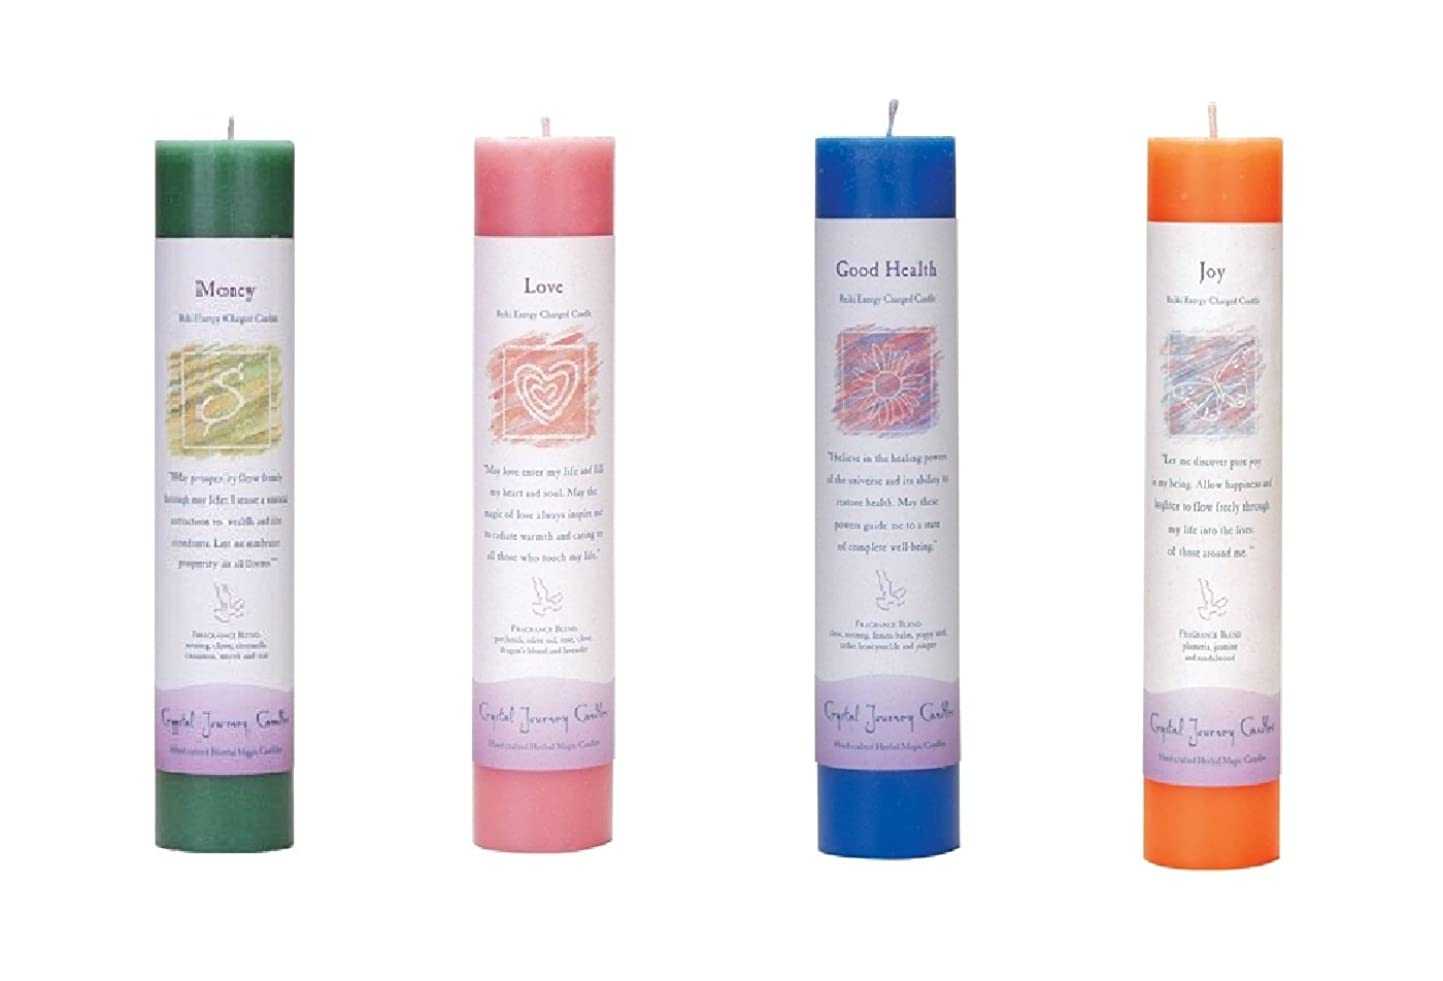 ホストサイト真面目な(Money, love, Good Health, Joy) - Crystal Journey Reiki Charged Herbal Magic Pillar Candle Bundle (Money, love, Good Health, Joy) - Bring Magic into your life now